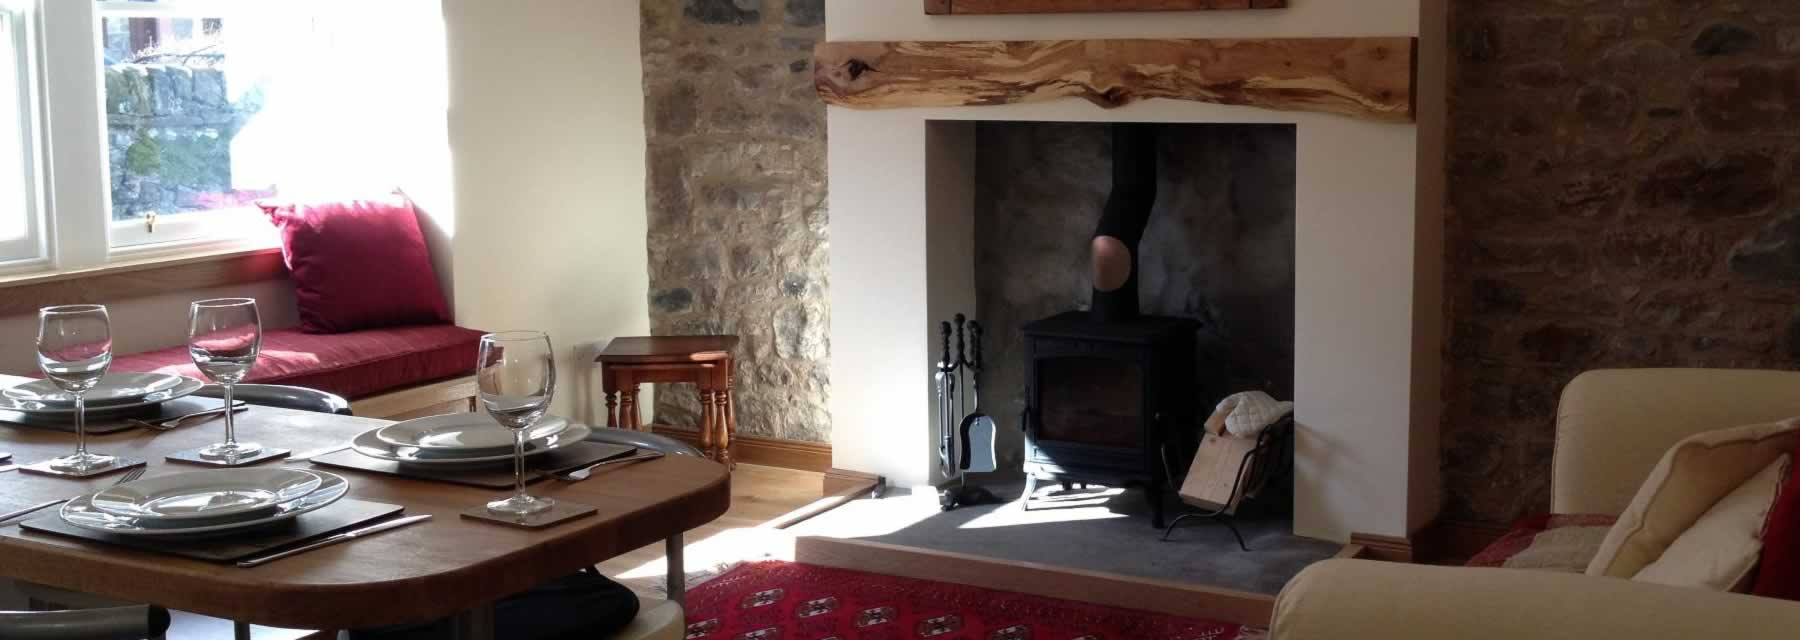 Gartmore interior holiday let property